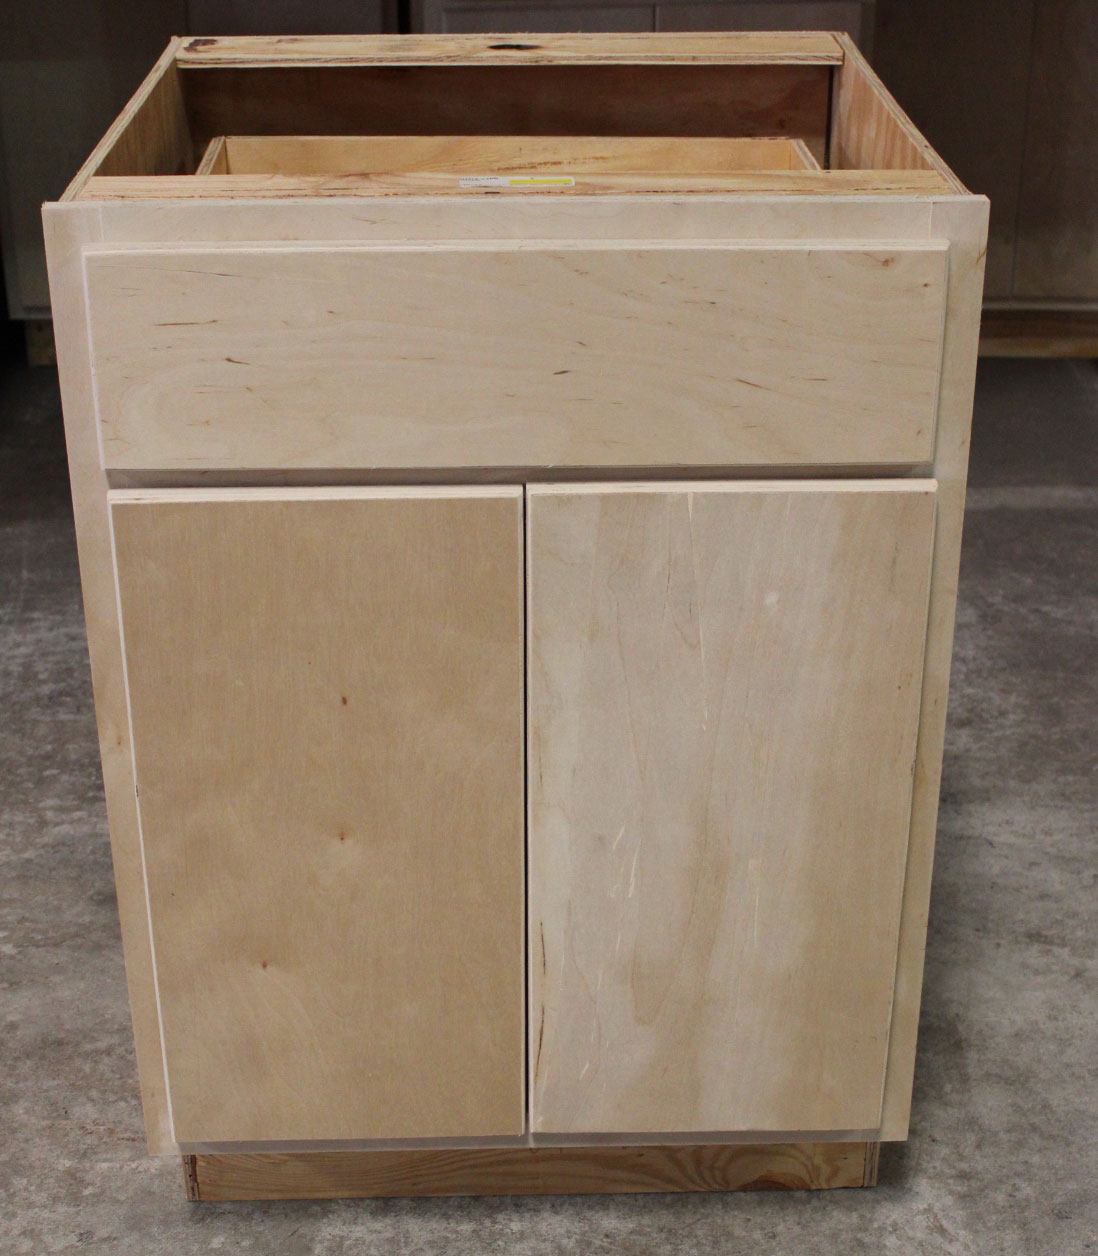 Unfinished Wood Bathroom Cabinets Specials For Anchorage Deebonk